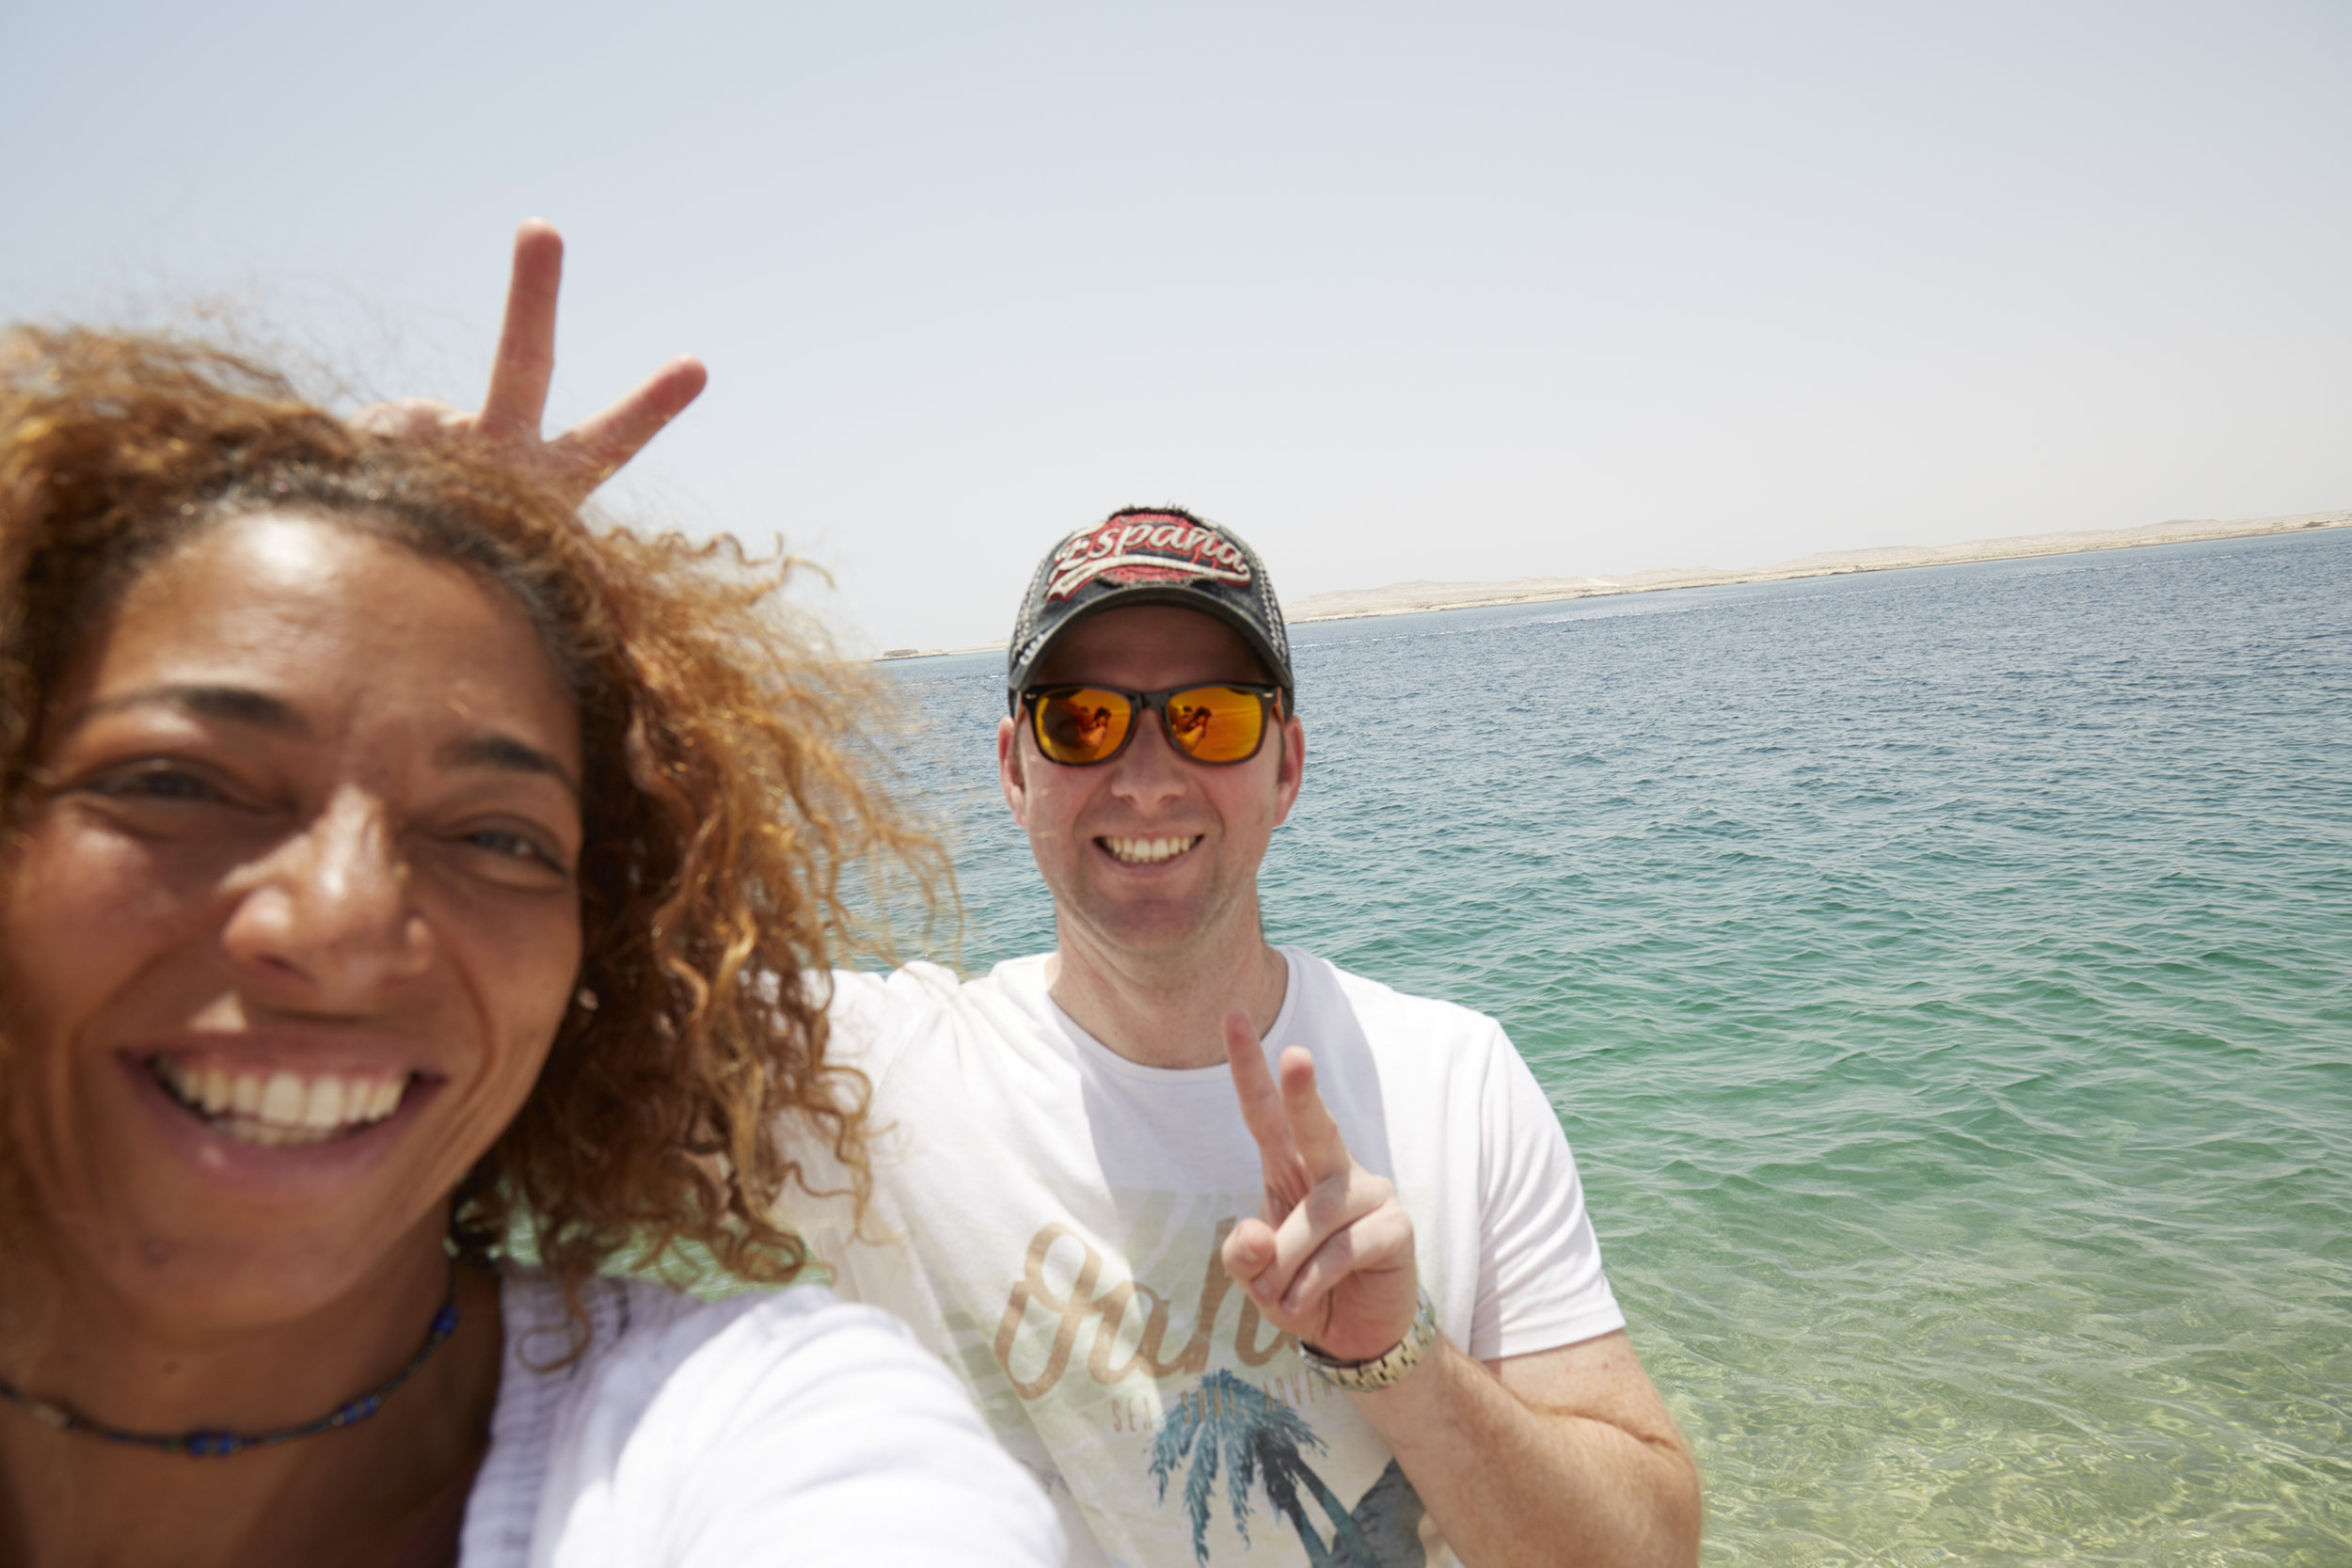 Gary& I on the Saudi Arabia border at the Inland Sea (Saudi Arabia in the distant background). Just moments after we received the news of 4+ countries in the Middle East politically exiling the State of Qatar.